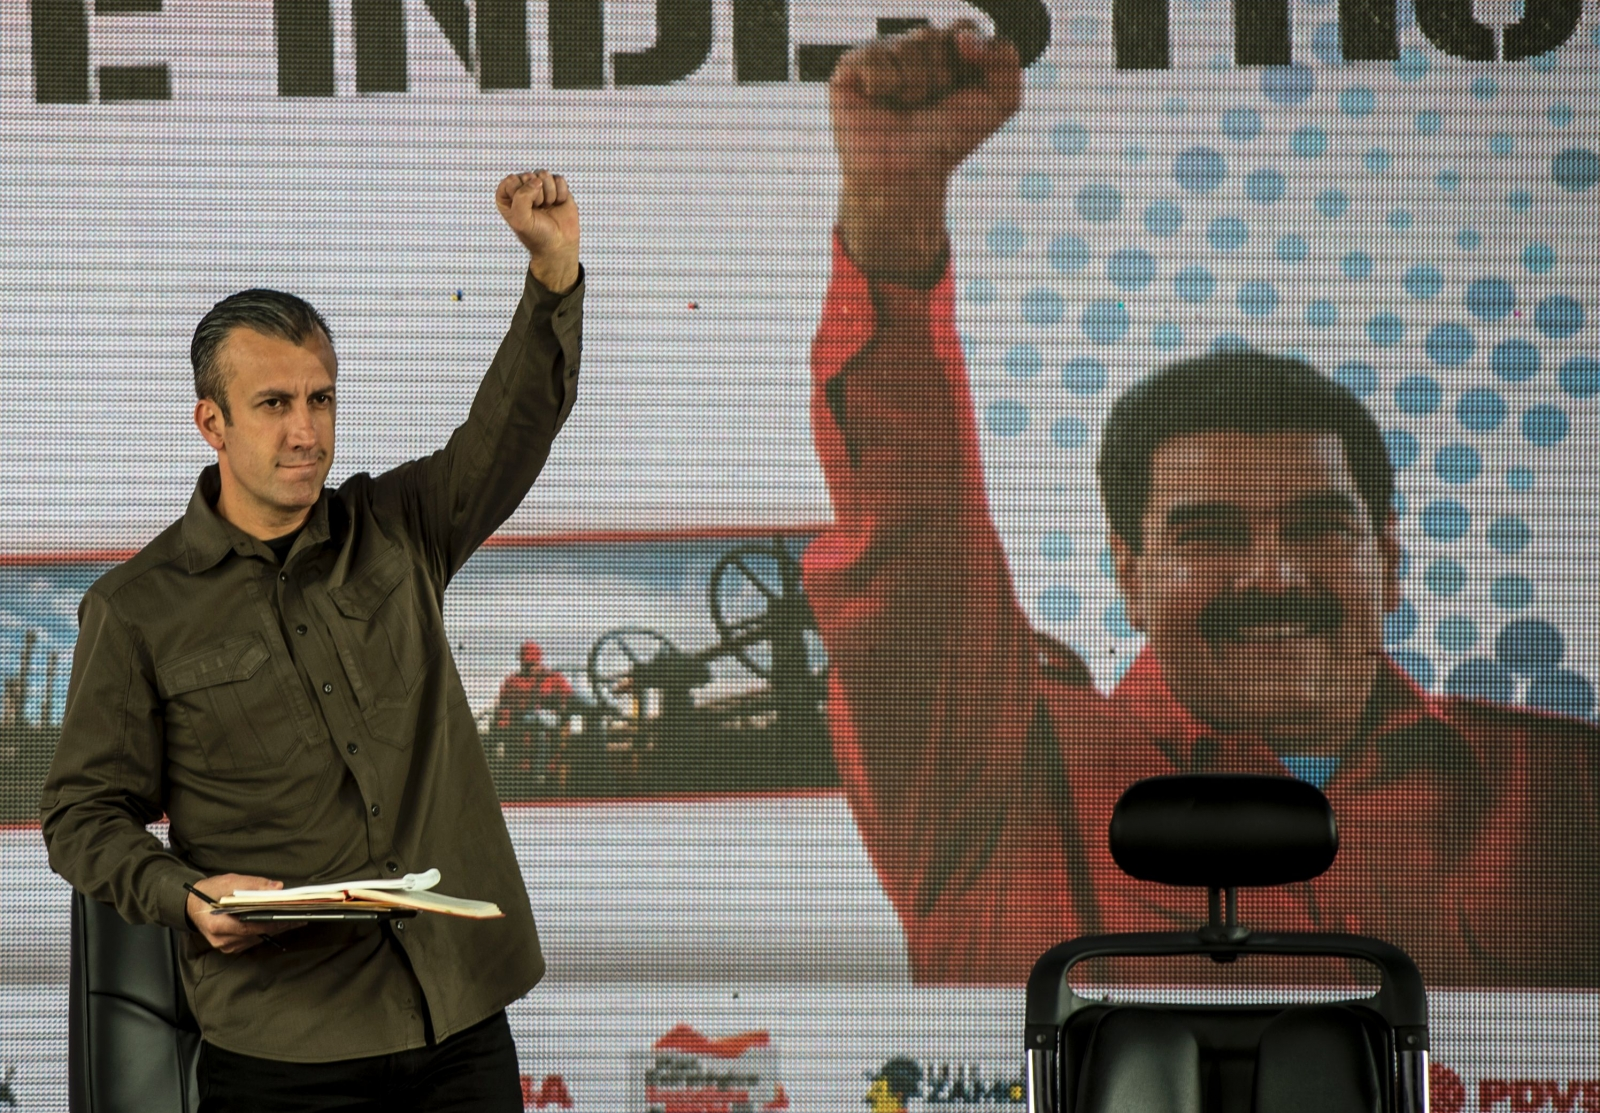 United States blacklists Venezuela's vice president as drug trafficker